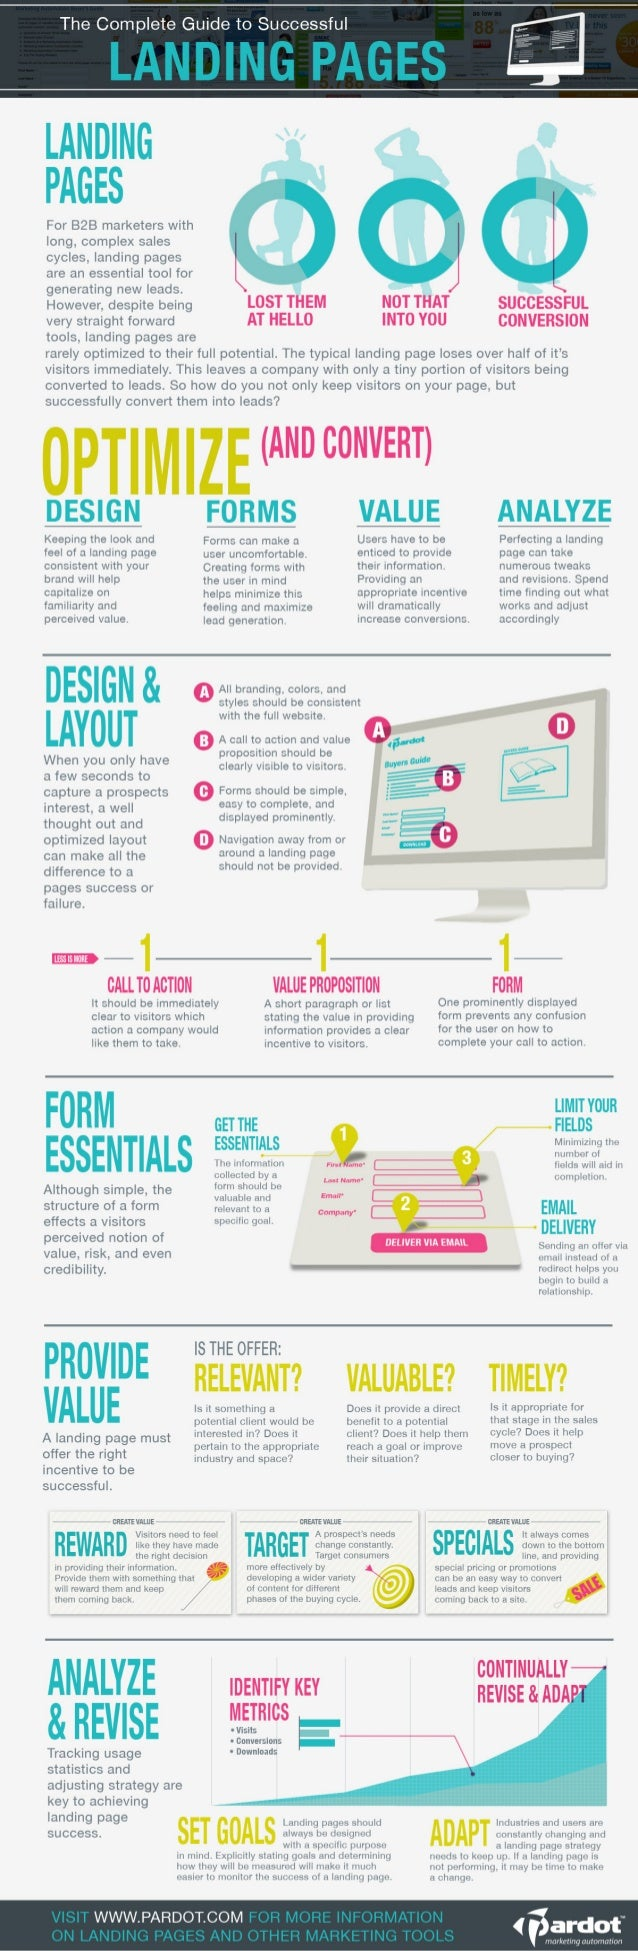 The Complete Guide to Successful Landing Pages [Infographic]